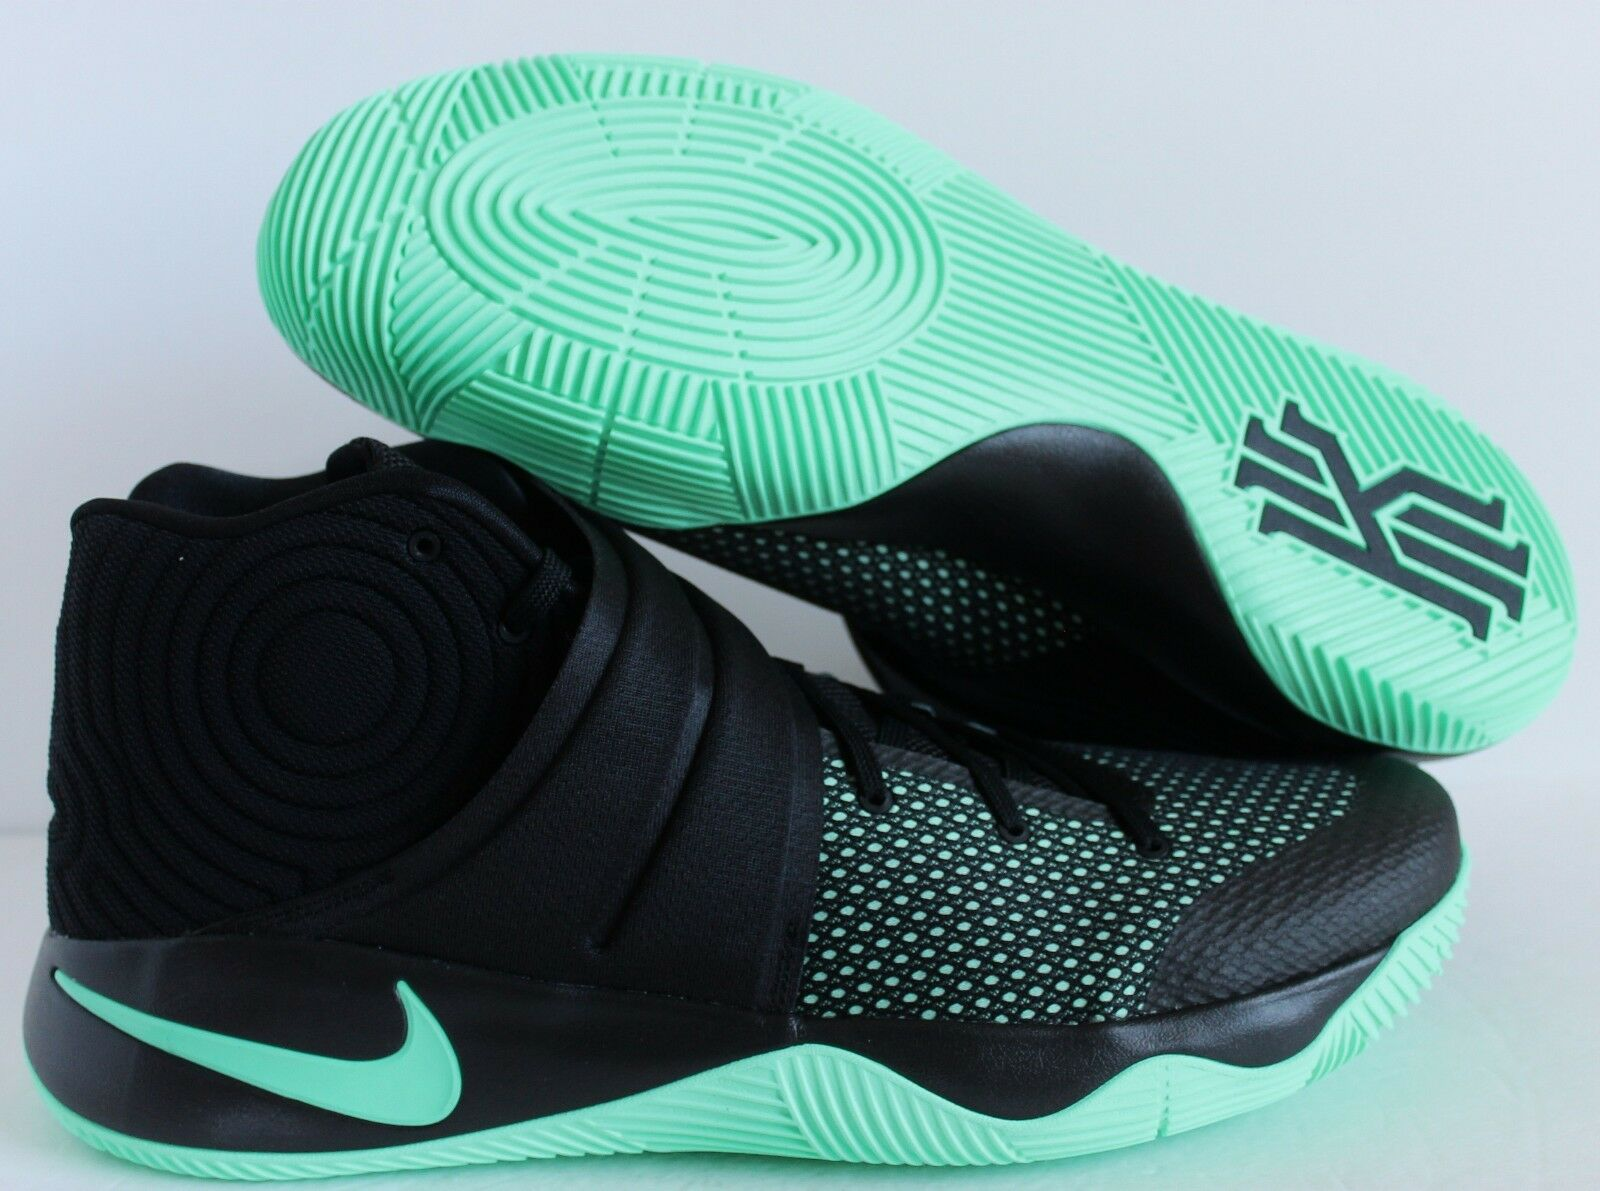 5afd49ee05c5 Nike Kyrie 2 Green Glow MINT Black Basketball Sz 18 819583-007 for ...